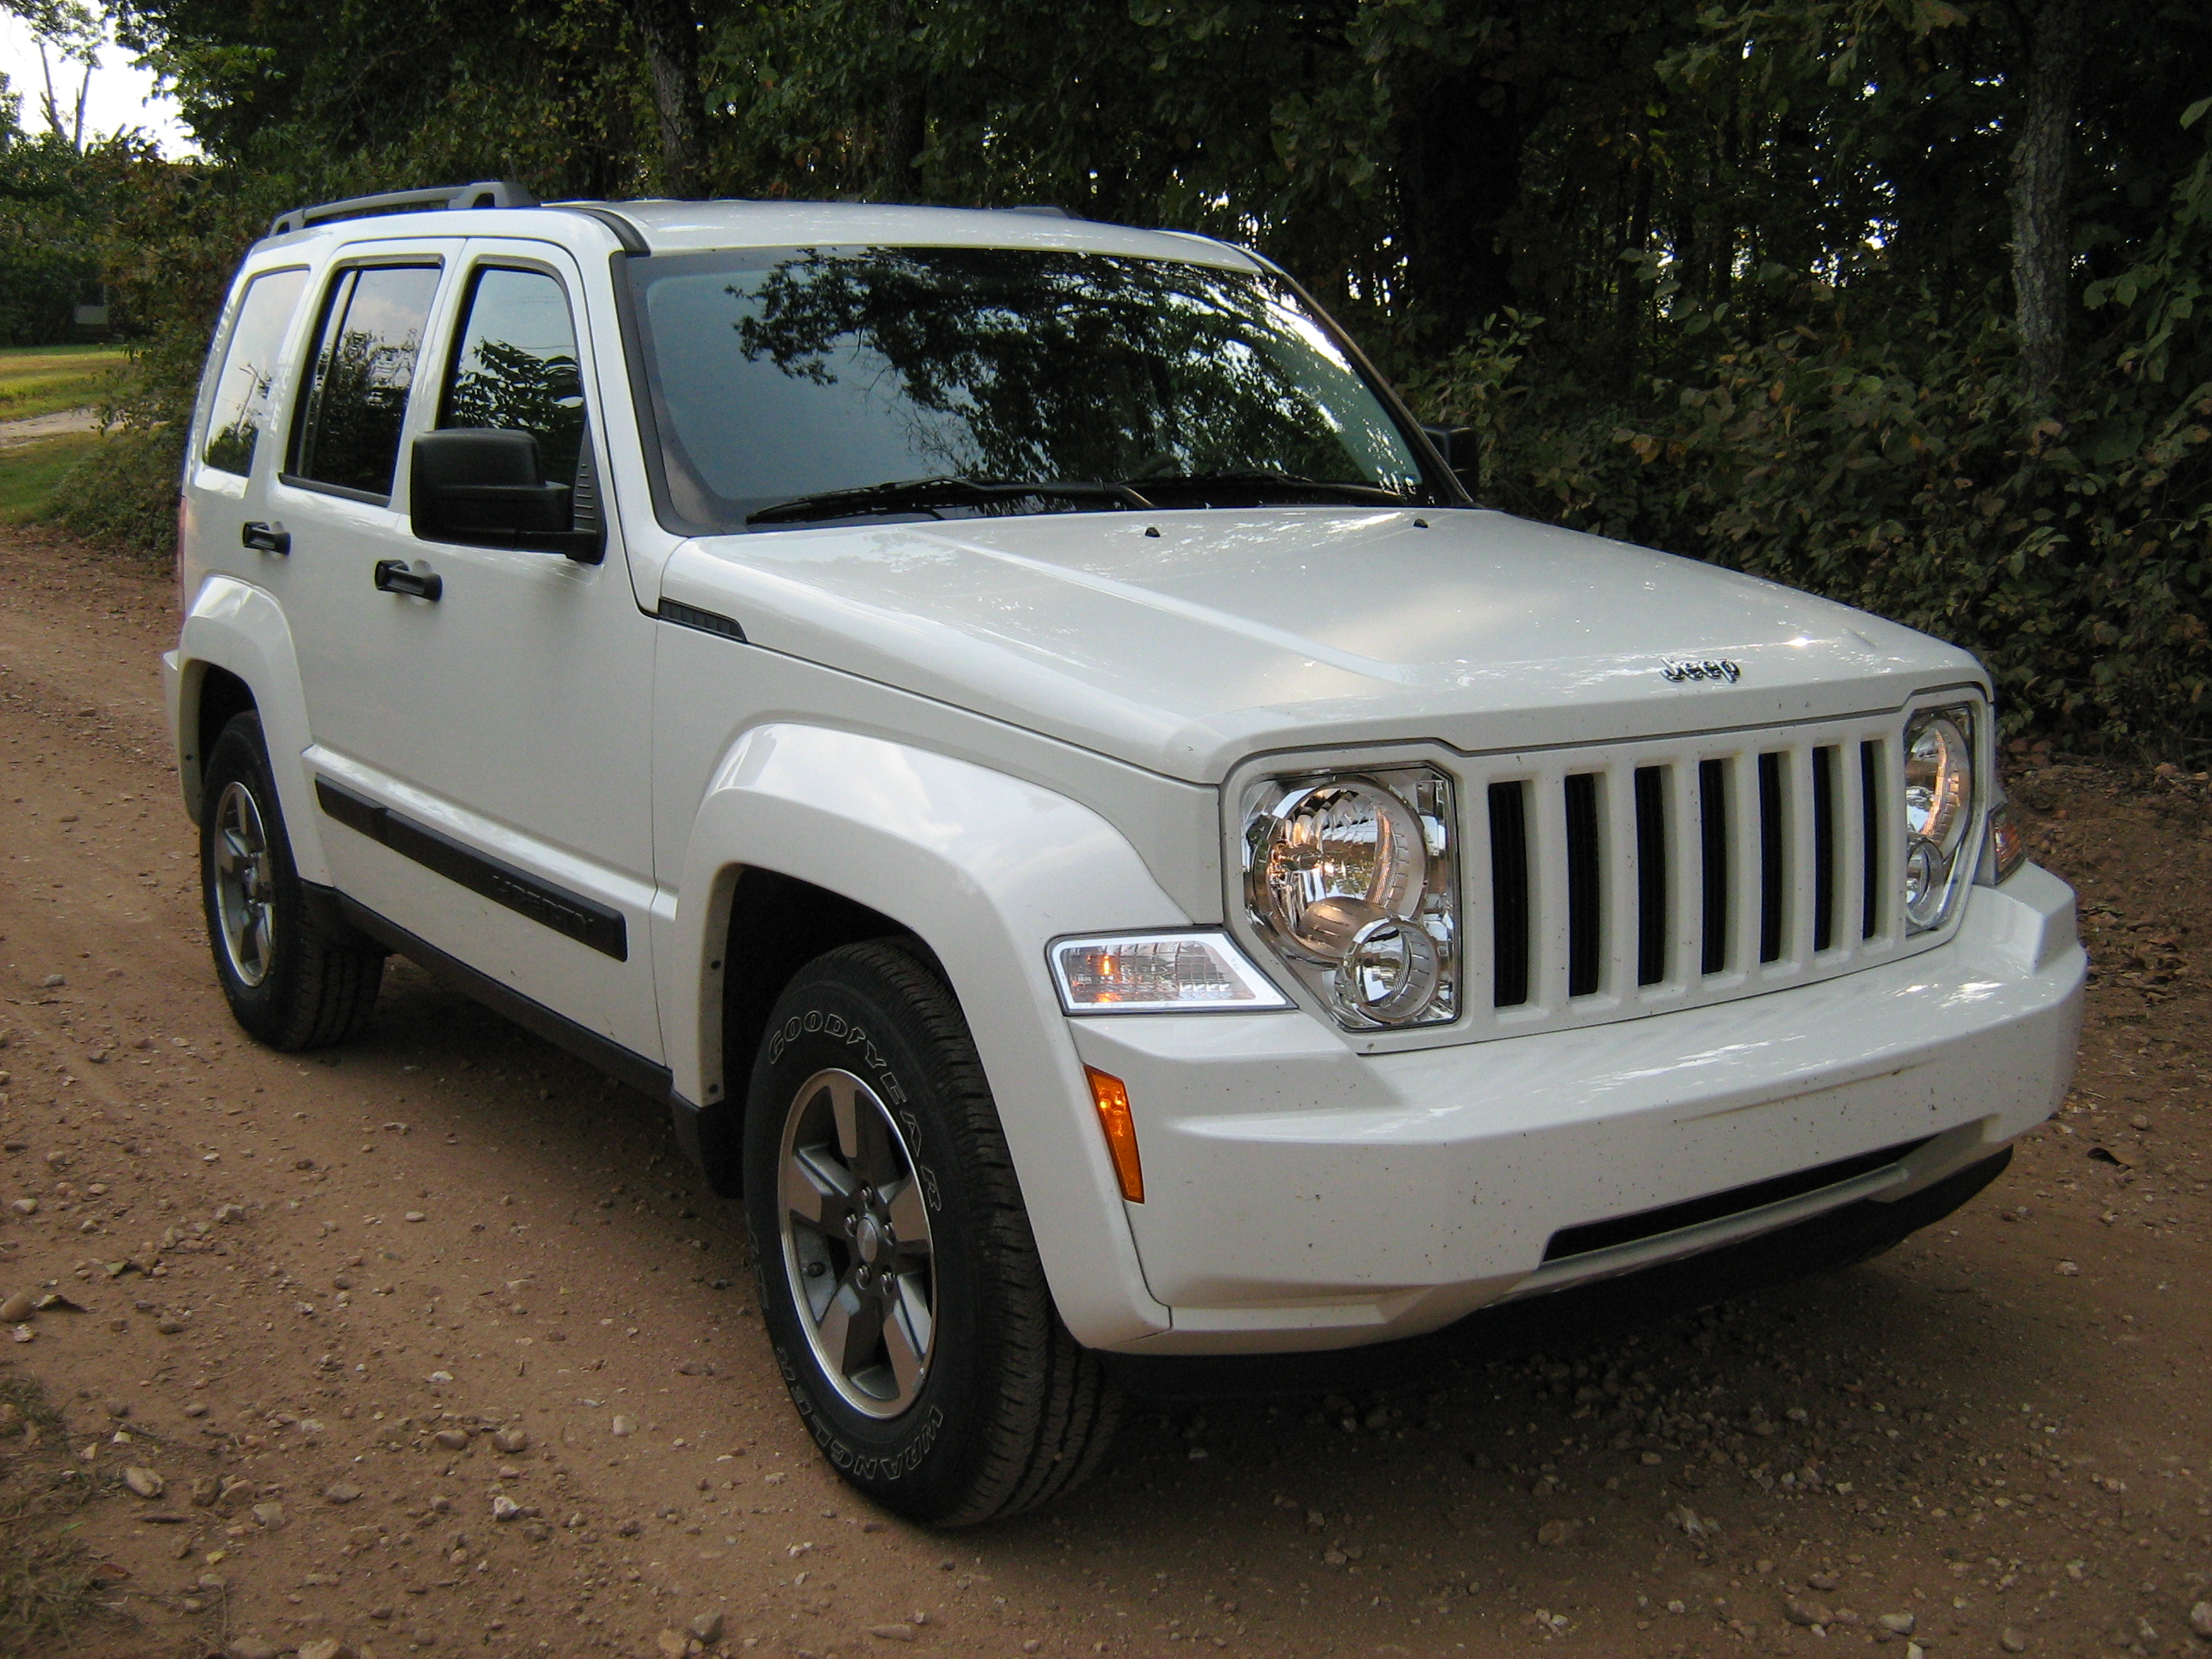 file 2008 jeep liberty kk white wikimedia commons. Black Bedroom Furniture Sets. Home Design Ideas